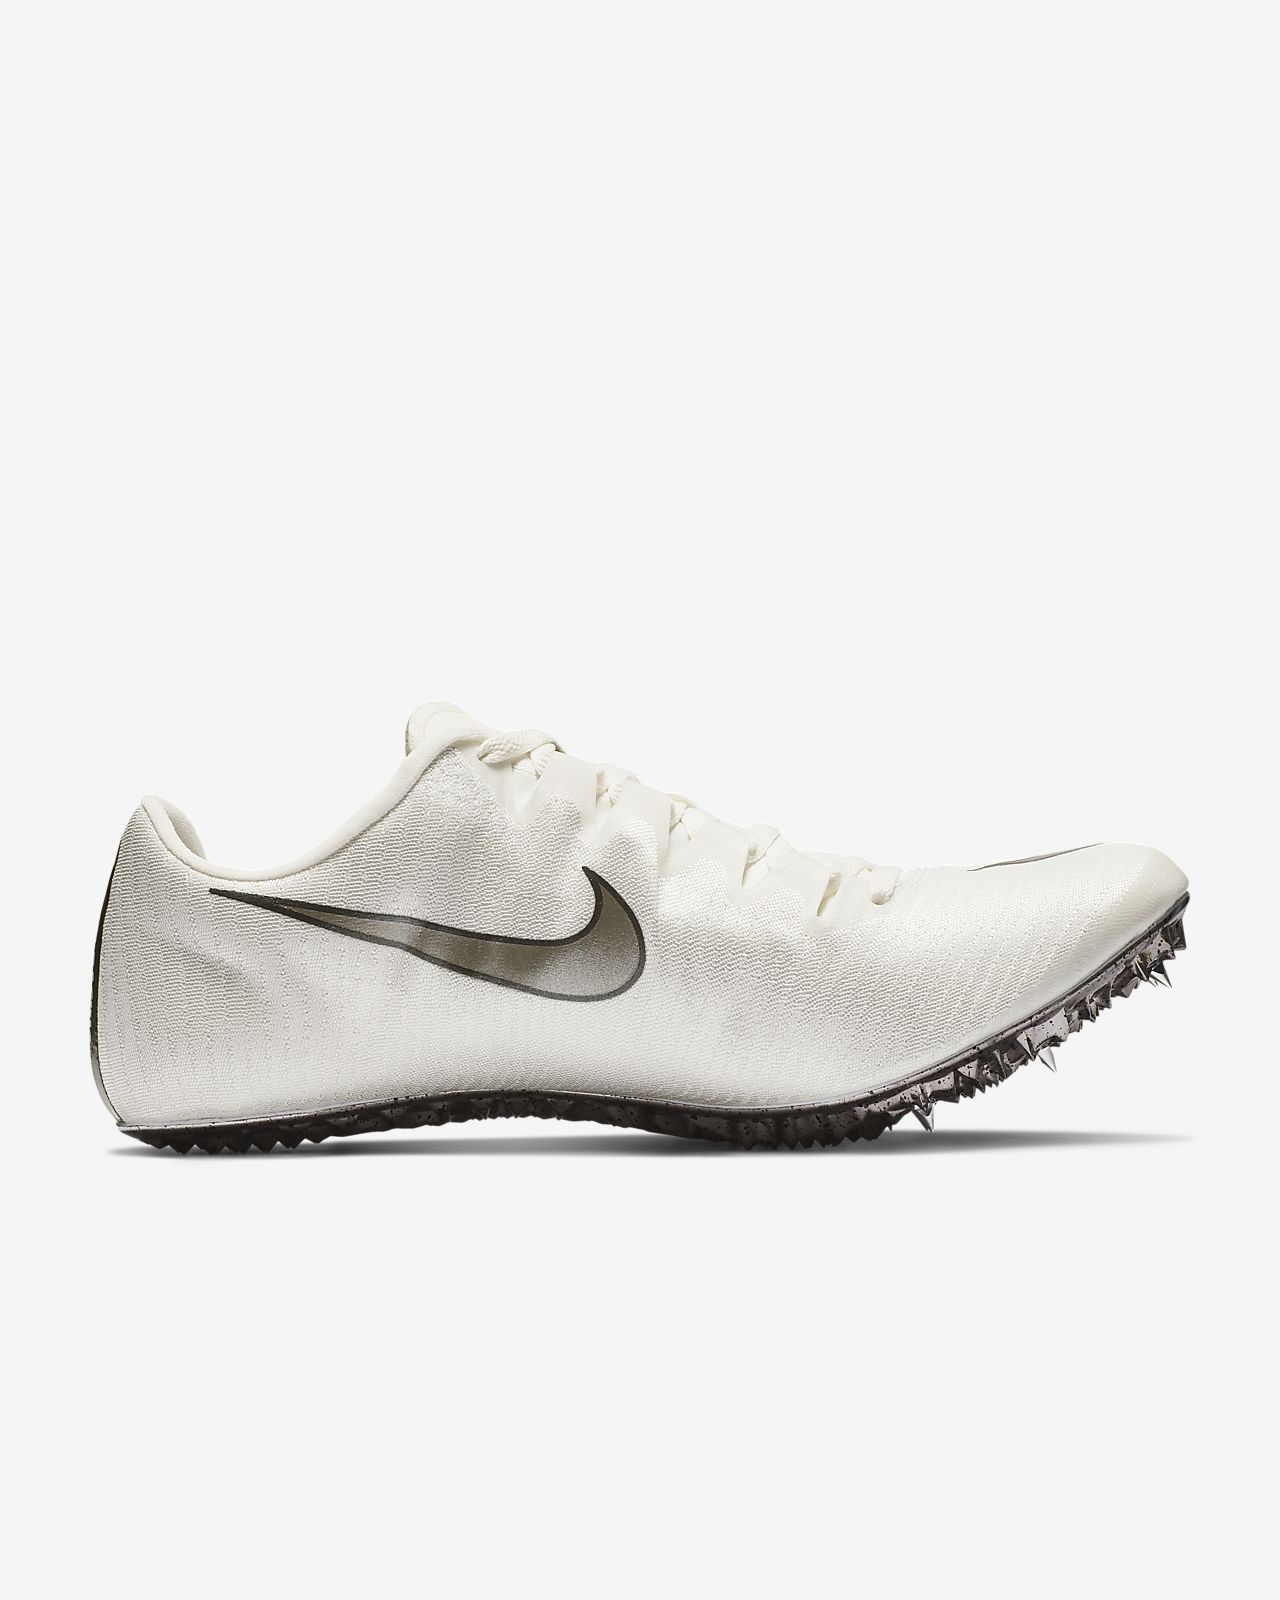 buy popular 26022 53248 ... Chaussure de course à pointes Nike Superfly Elite